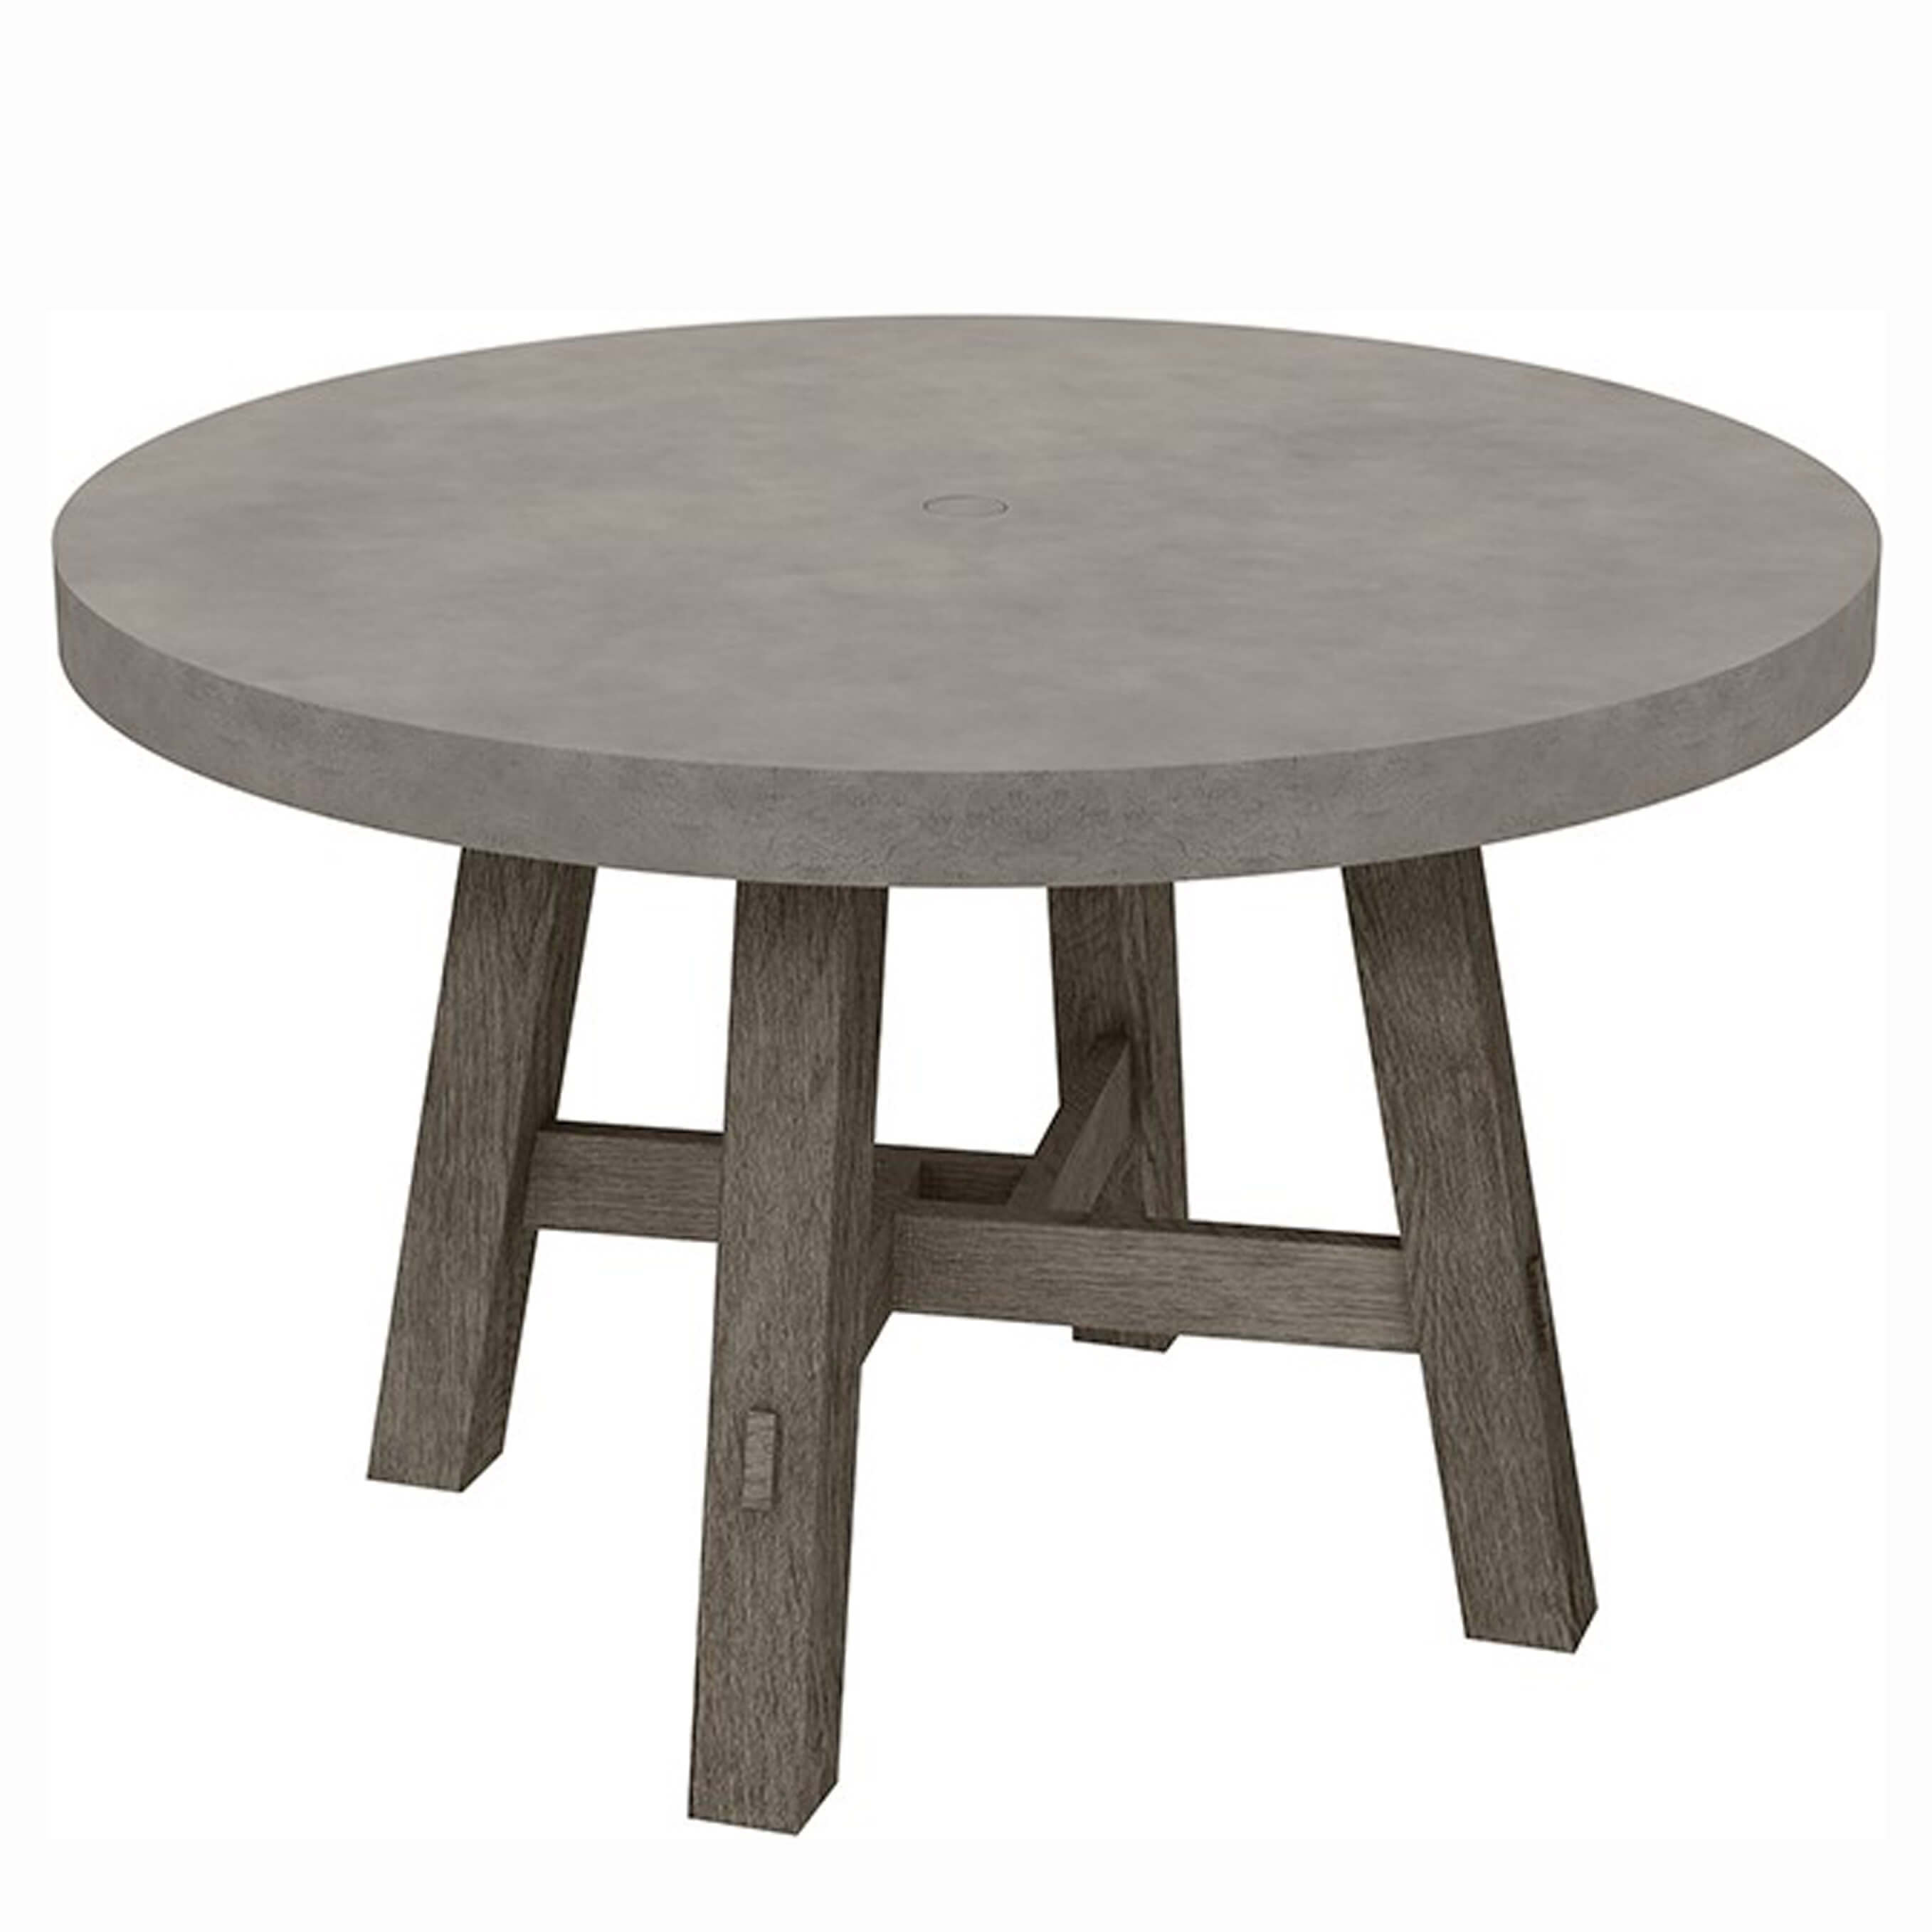 Ebel Amherst 50 Round Dining Table Outdoor Furniture Sunnyland Outdoor Patio Furniture Dallas Fort Worth Tx